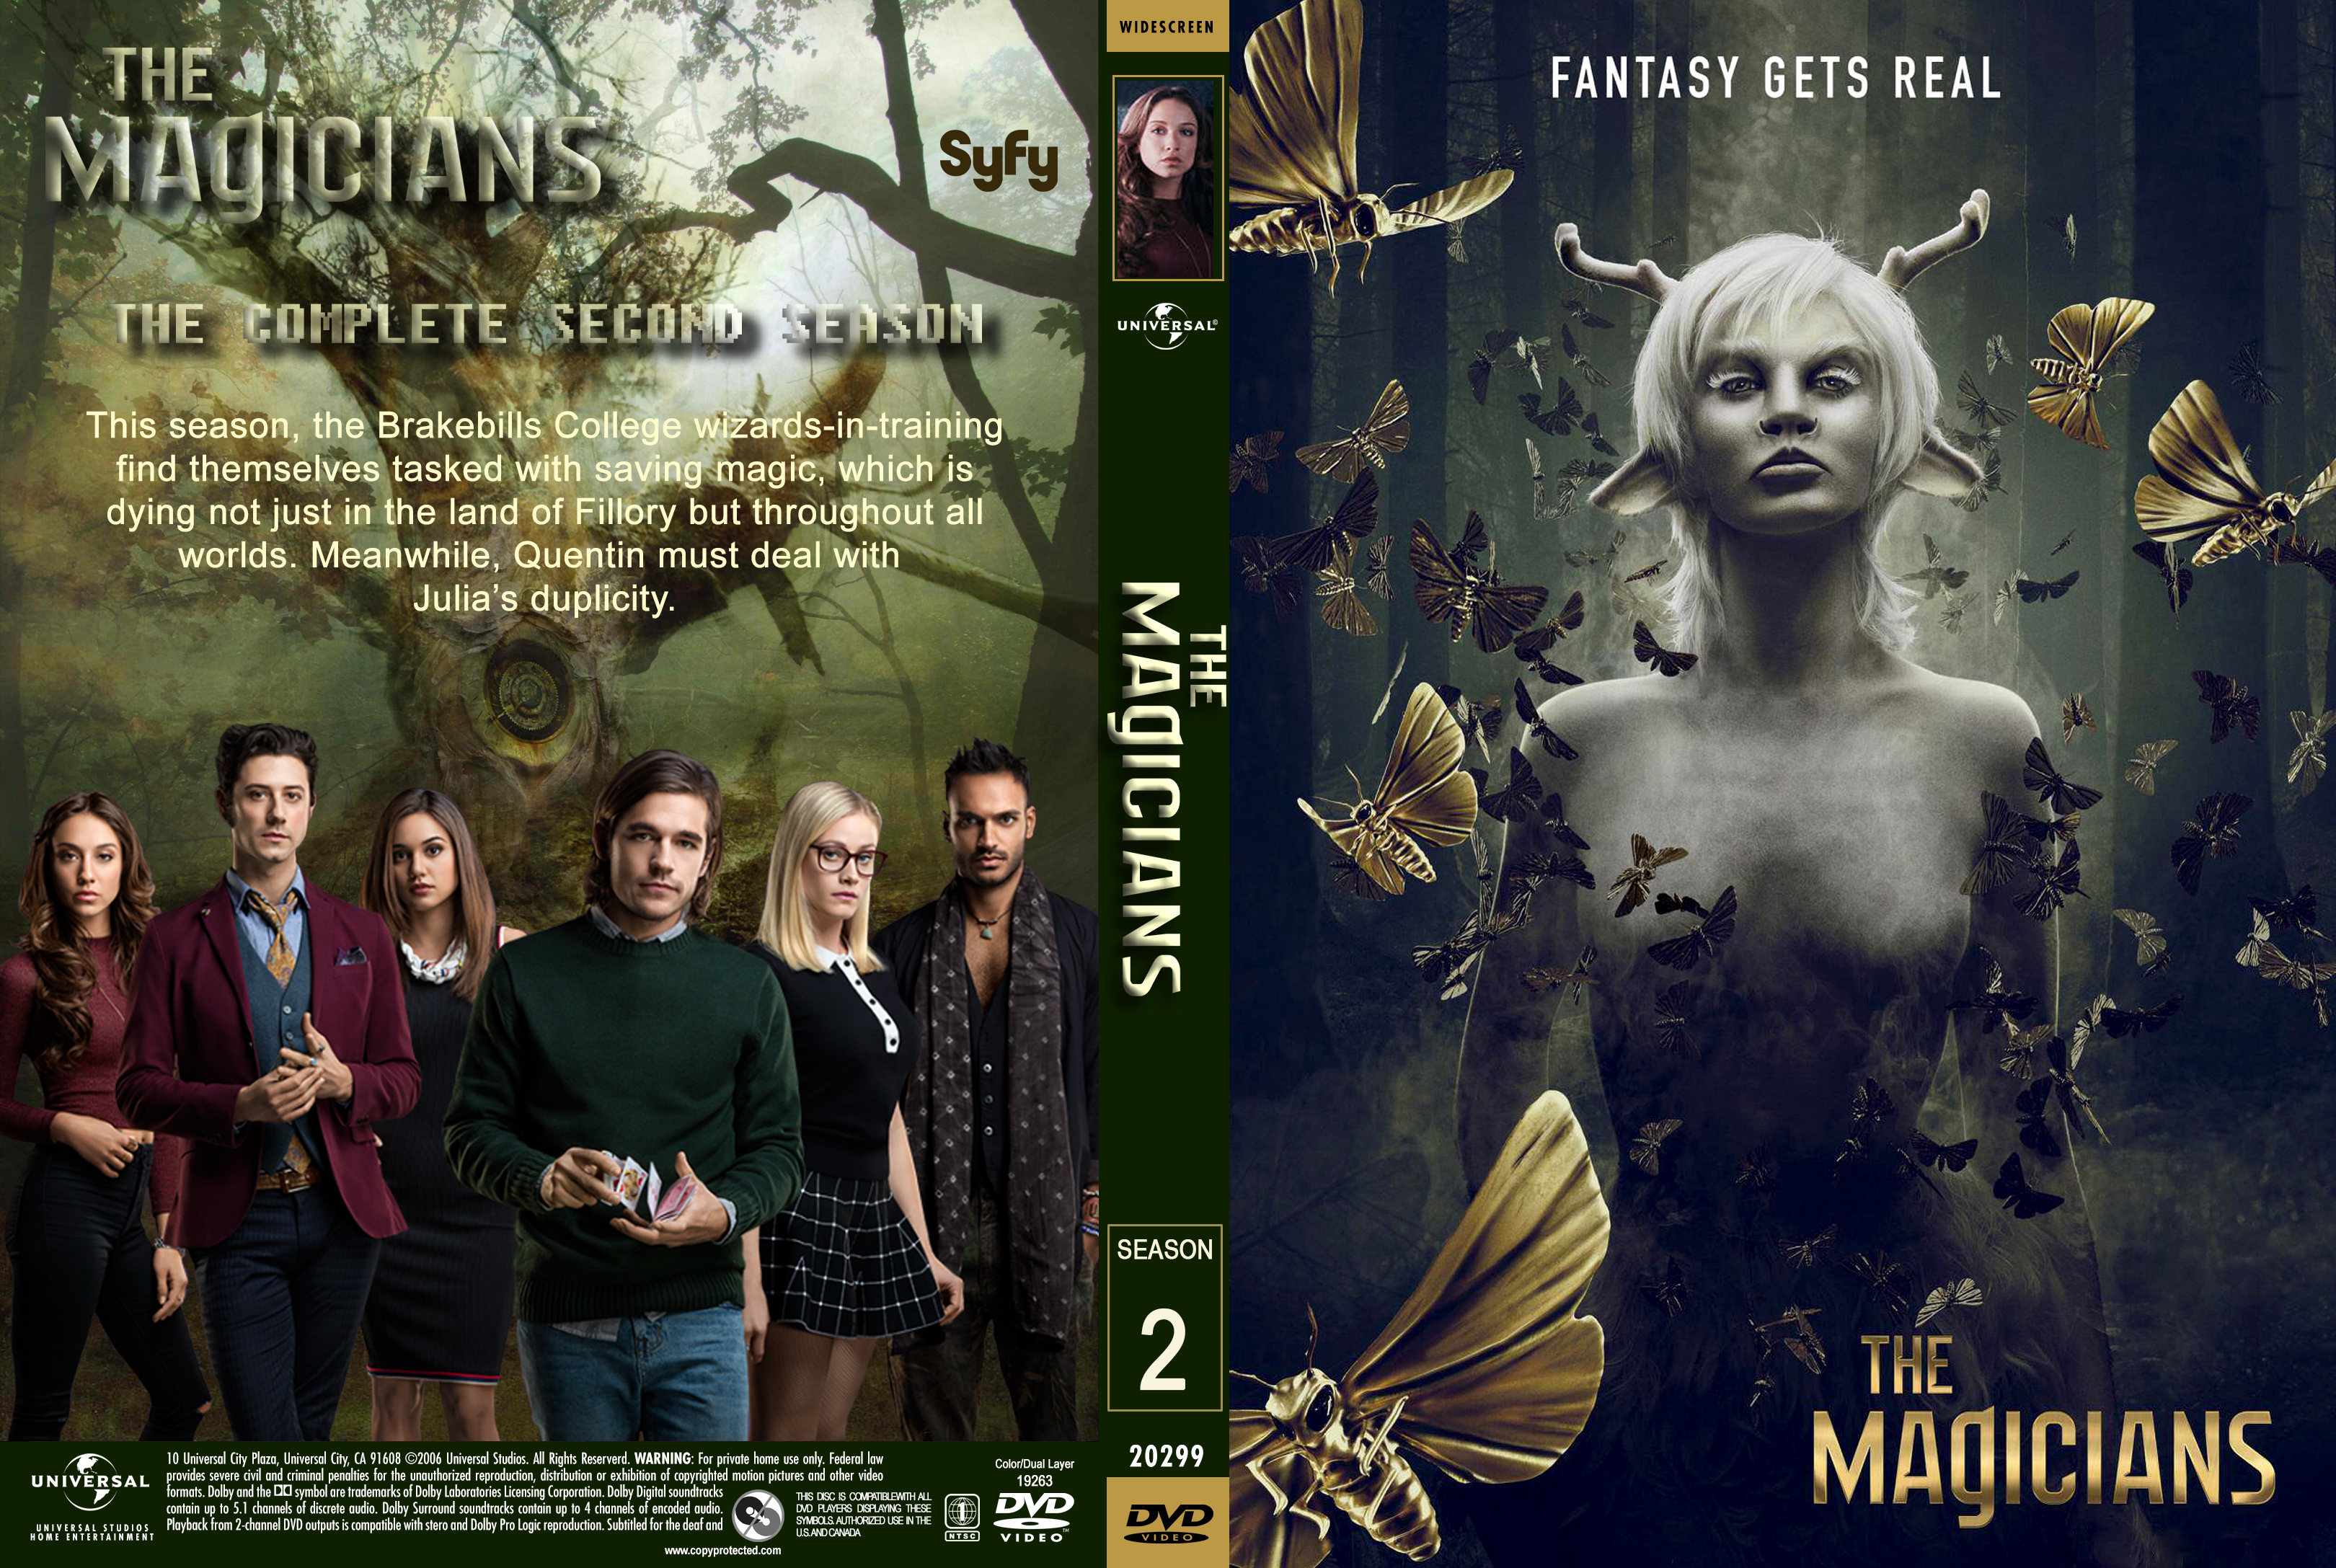 https://www.covercentury.com/covers/dvd/t/The_Magicians__Season_2_(2017)_R1_CUSTOM-[front].jpg